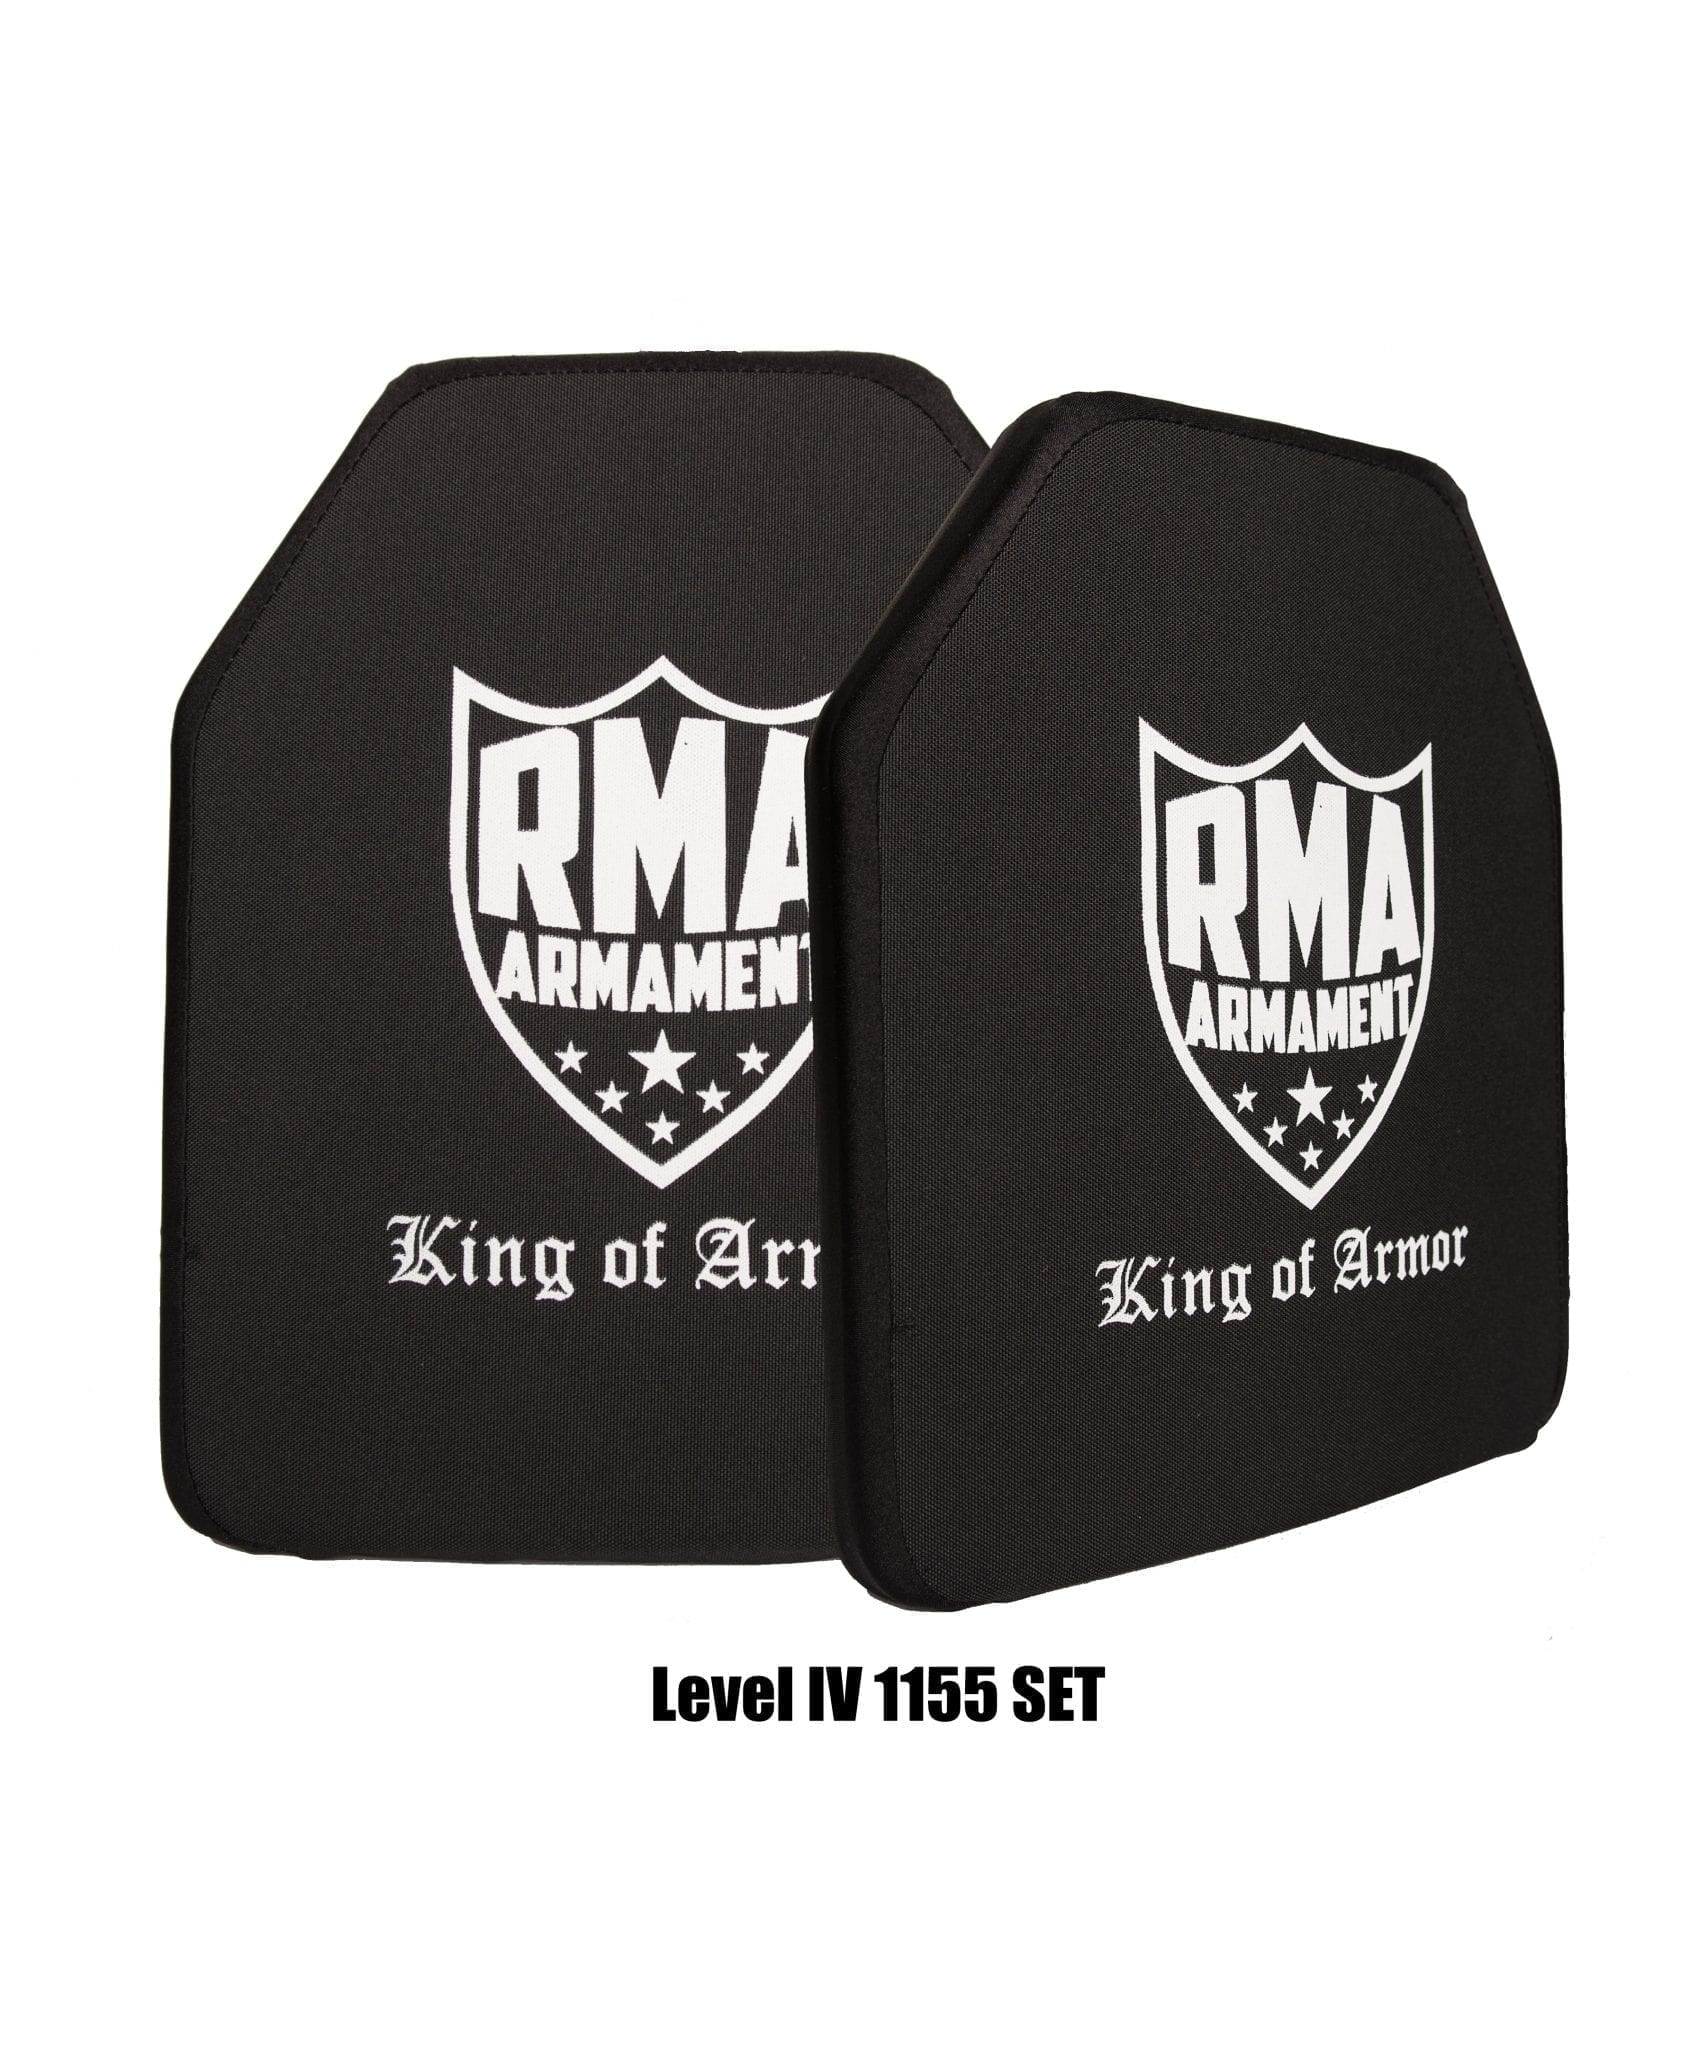 Level IV Hard Armor Plate SET (Model #1155) NIJ .06 Certified  sc 1 th 246 & Bullet Proof Vests u0026 Hard Armor Plates | RMA Armament